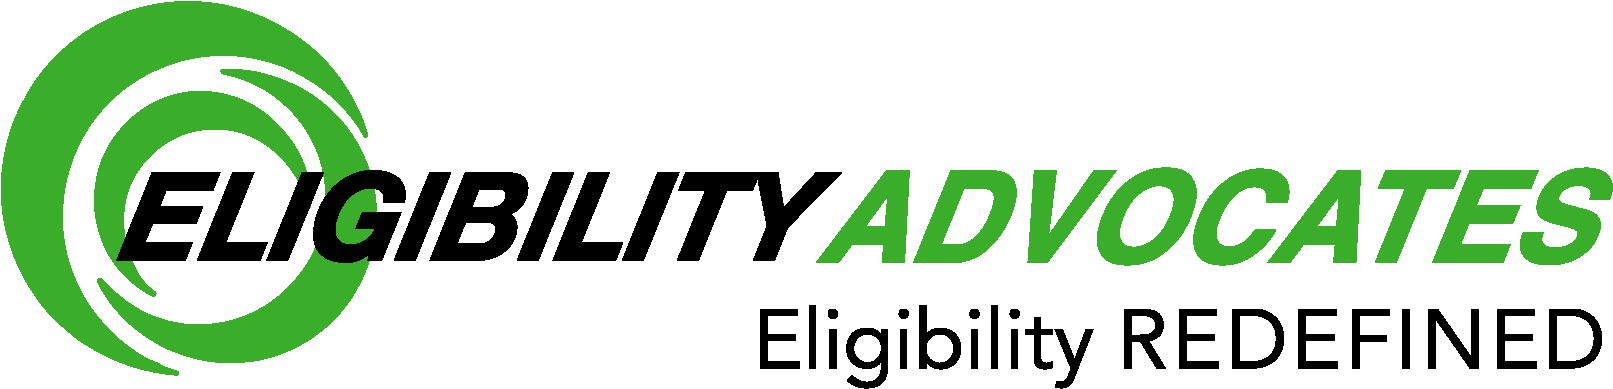 The logo of patient eligibility service and out-of-state Medicaid billing company EligibilityAdvocates.